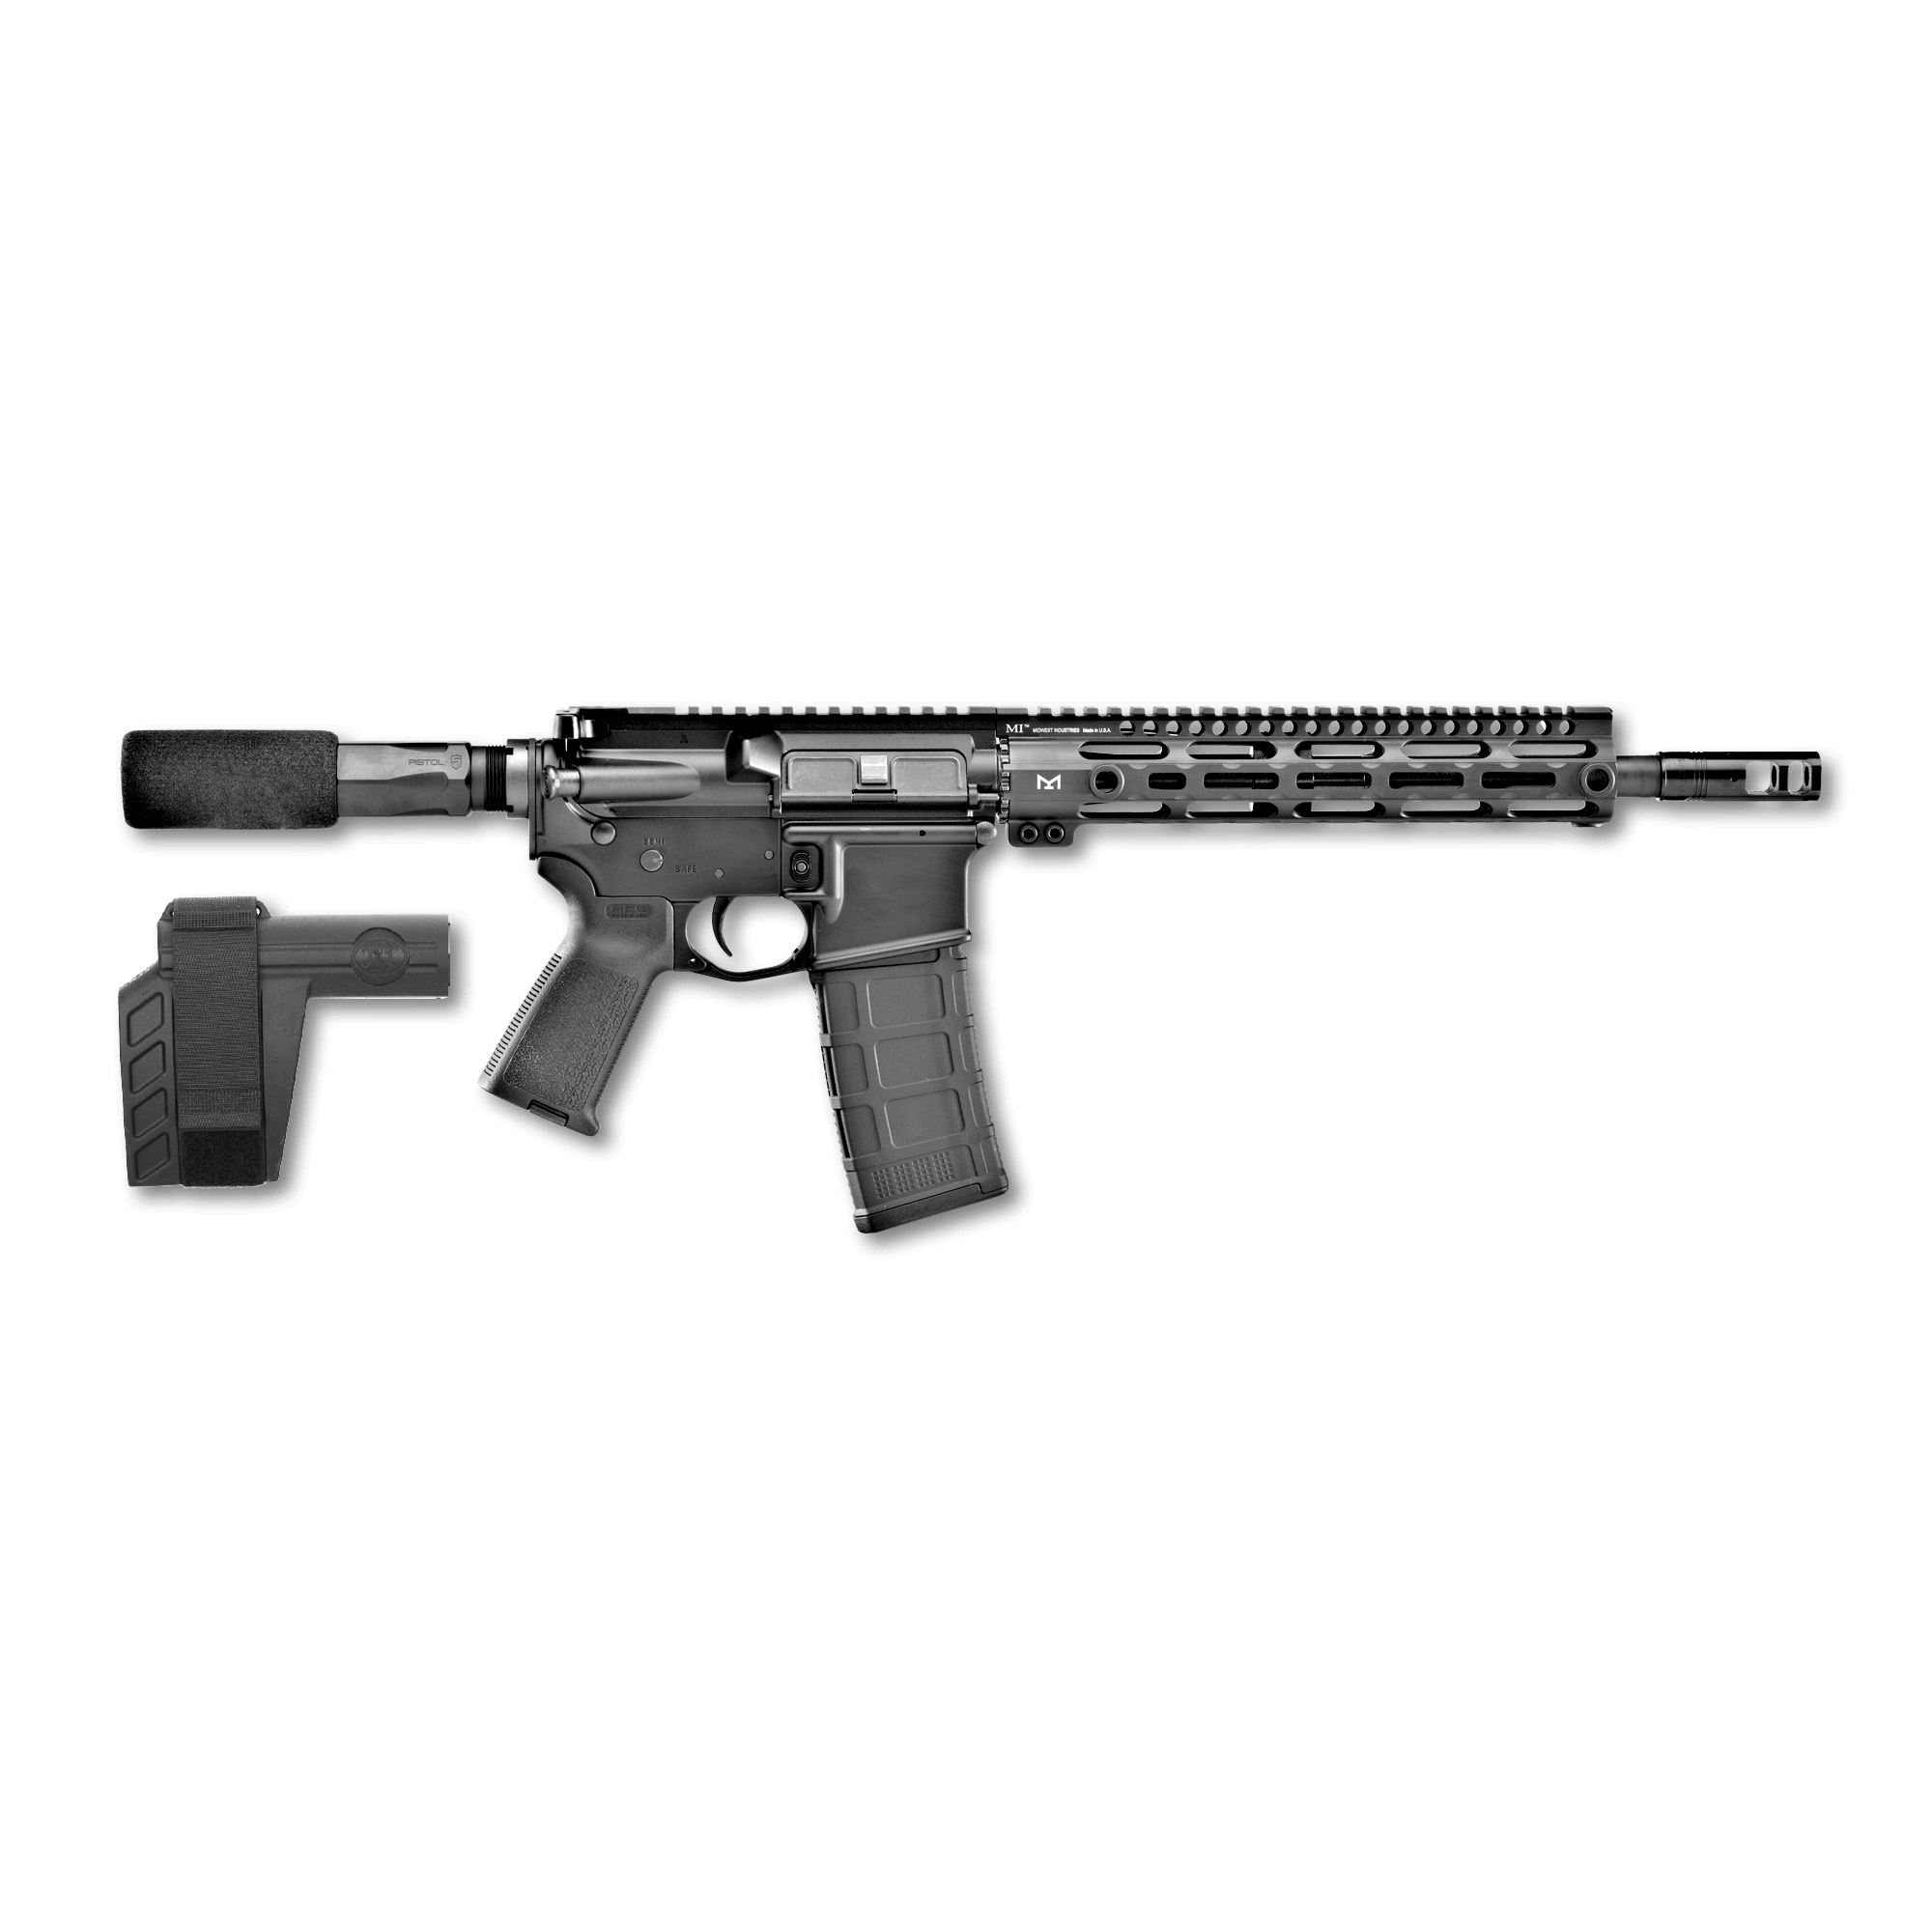 """The FN 15(R) Pistol chambered in .300 AAC Blackout features a 12-inch"""" cold hammer-forged"""" chrome-lined barrel with 1:7 twist and pistol-length gas system that is optimized to get the highest level of performance out of the 7.62x35mm cartridge in terms of accuracy and reliability. The 10-inch M-LOK rail"""" fixed low profile stainless-steel gas block FN combat trigger"""" weighing in between 4.5-7.75 lbs."""" and SBX-K Pistol Stabilizing Brace makes this little carbine-caliber pistol a breeze to shoot."""